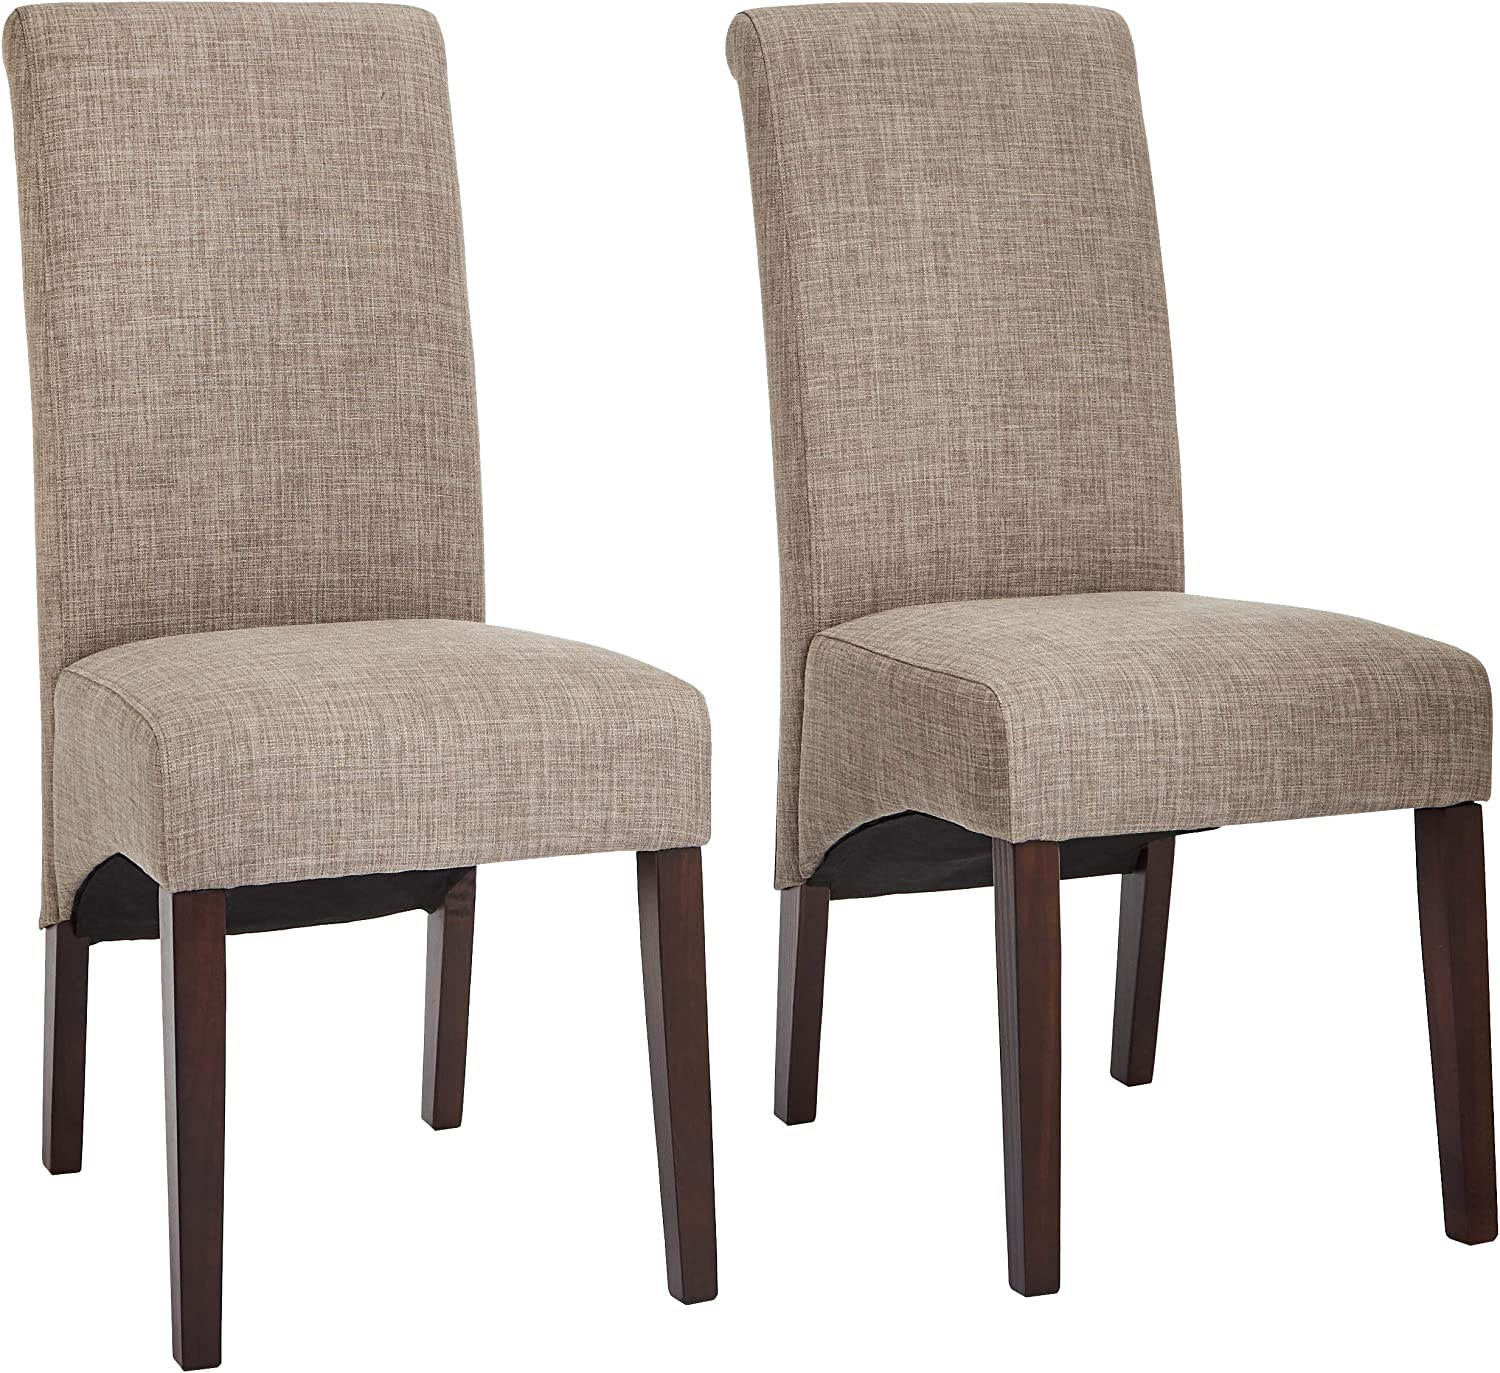 Red Hook Coimbra Upholstered Parsons Dining Chair – Set of 2, Beautiful Beige